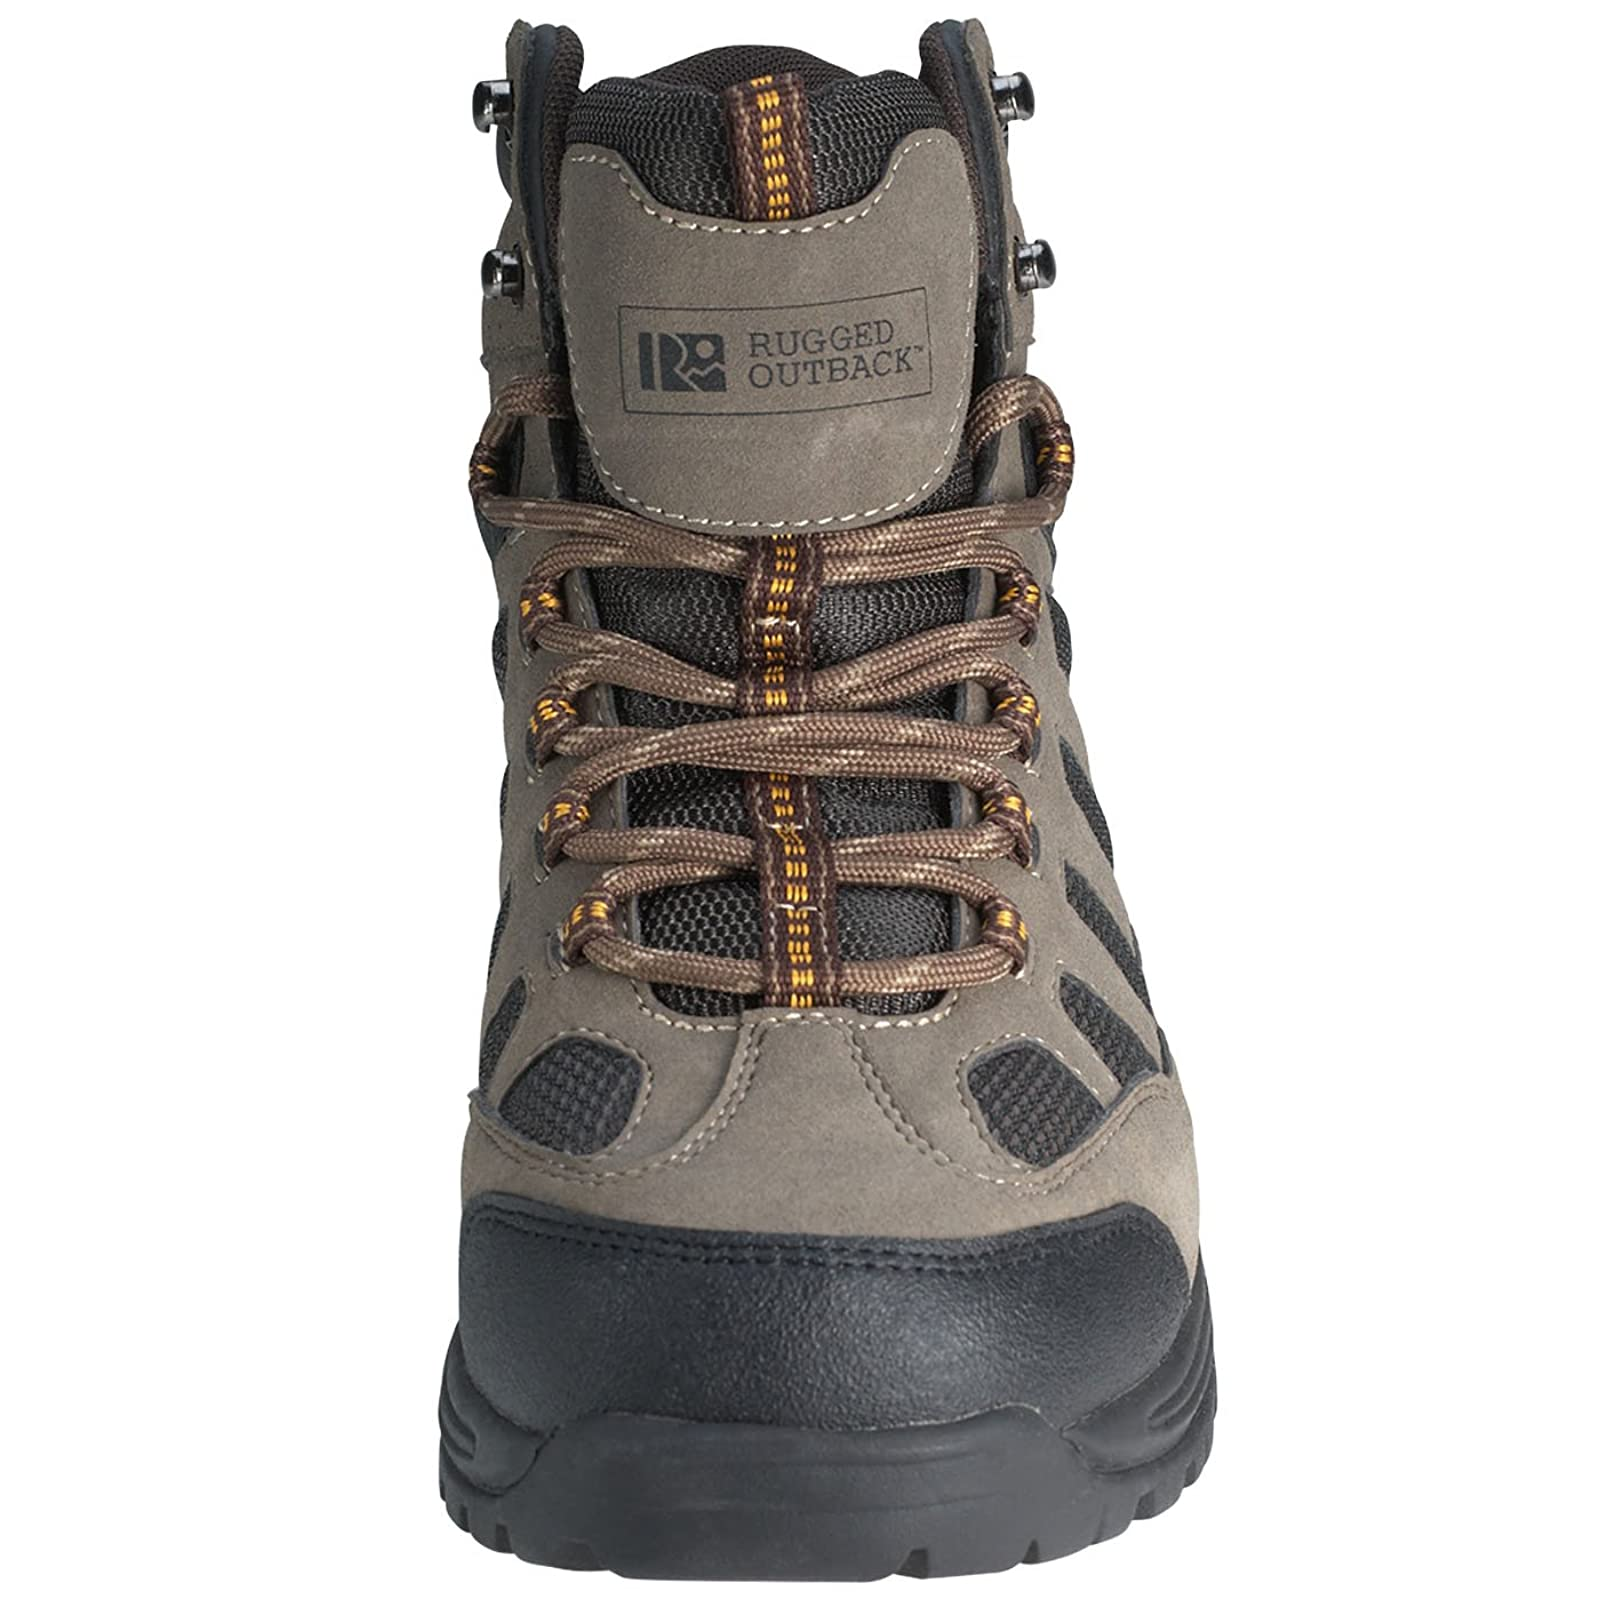 Rugged Outback Men's Ridge Mid Hiker Small - 3